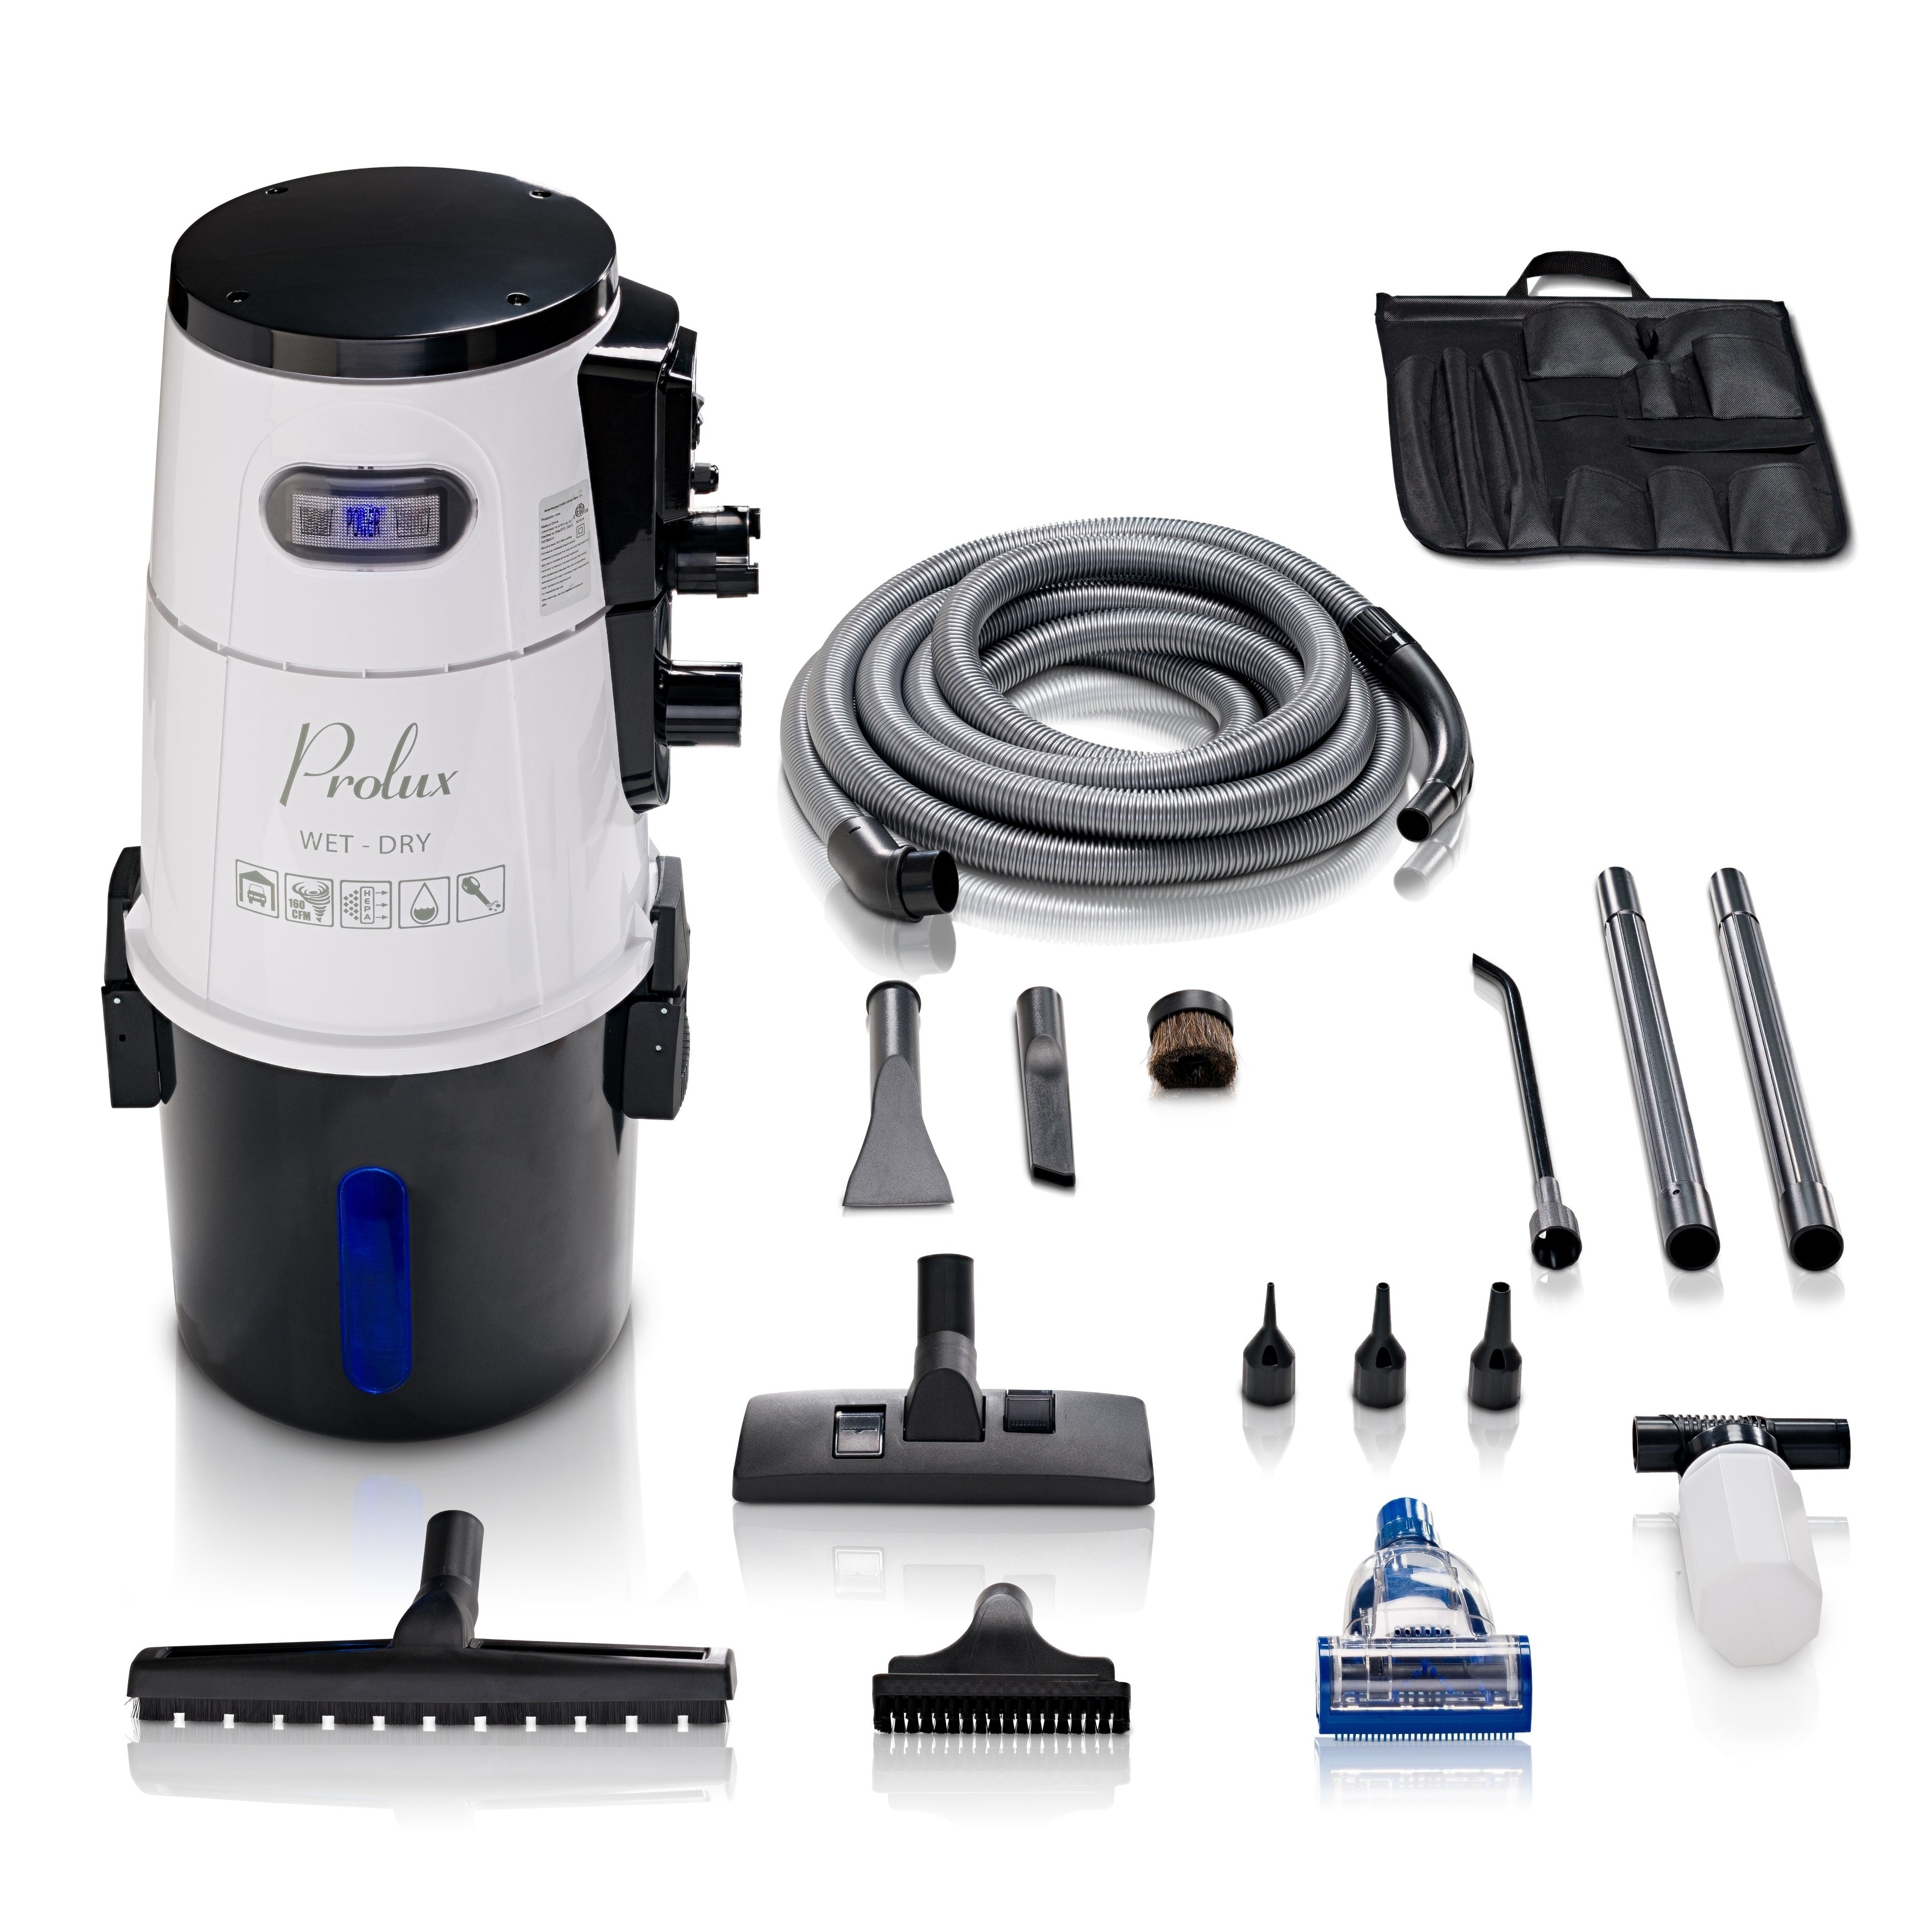 prolux professional wall mounted garage shop vacuum wet dry pick up